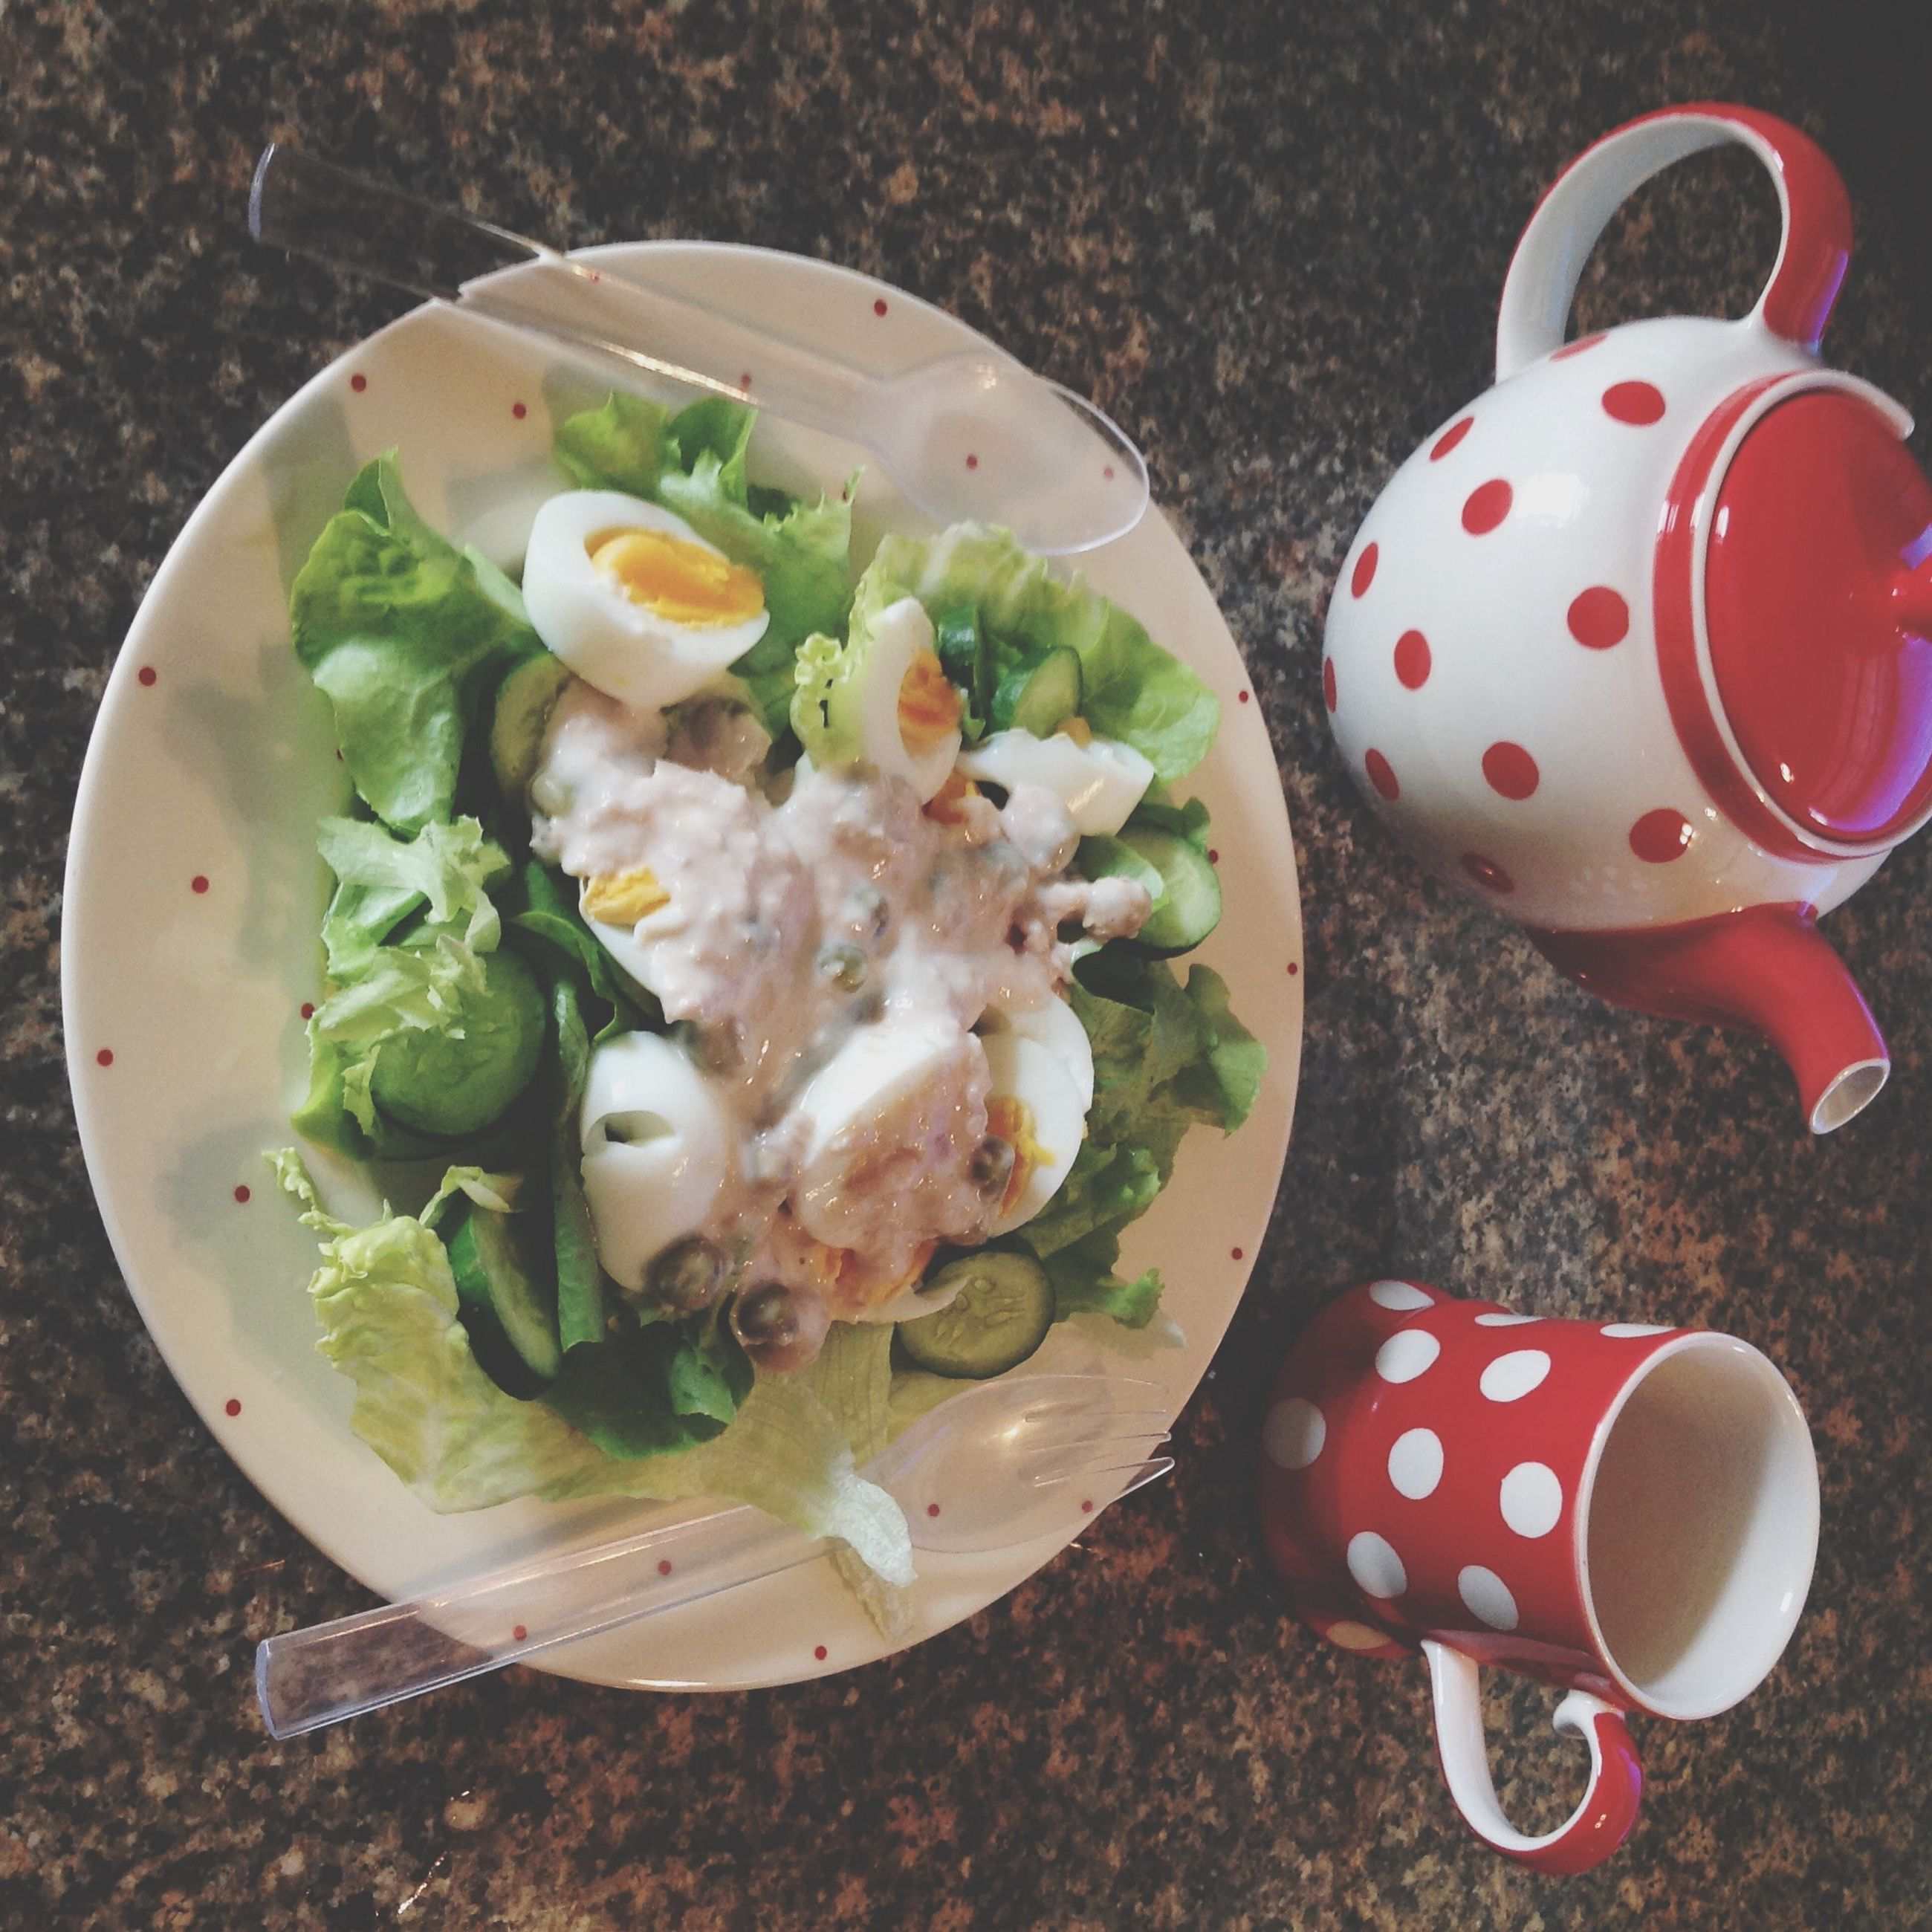 food and drink, table, freshness, food, still life, drink, high angle view, plate, indoors, healthy eating, refreshment, bowl, spoon, coffee cup, ready-to-eat, serving size, breakfast, served, coffee - drink, cup